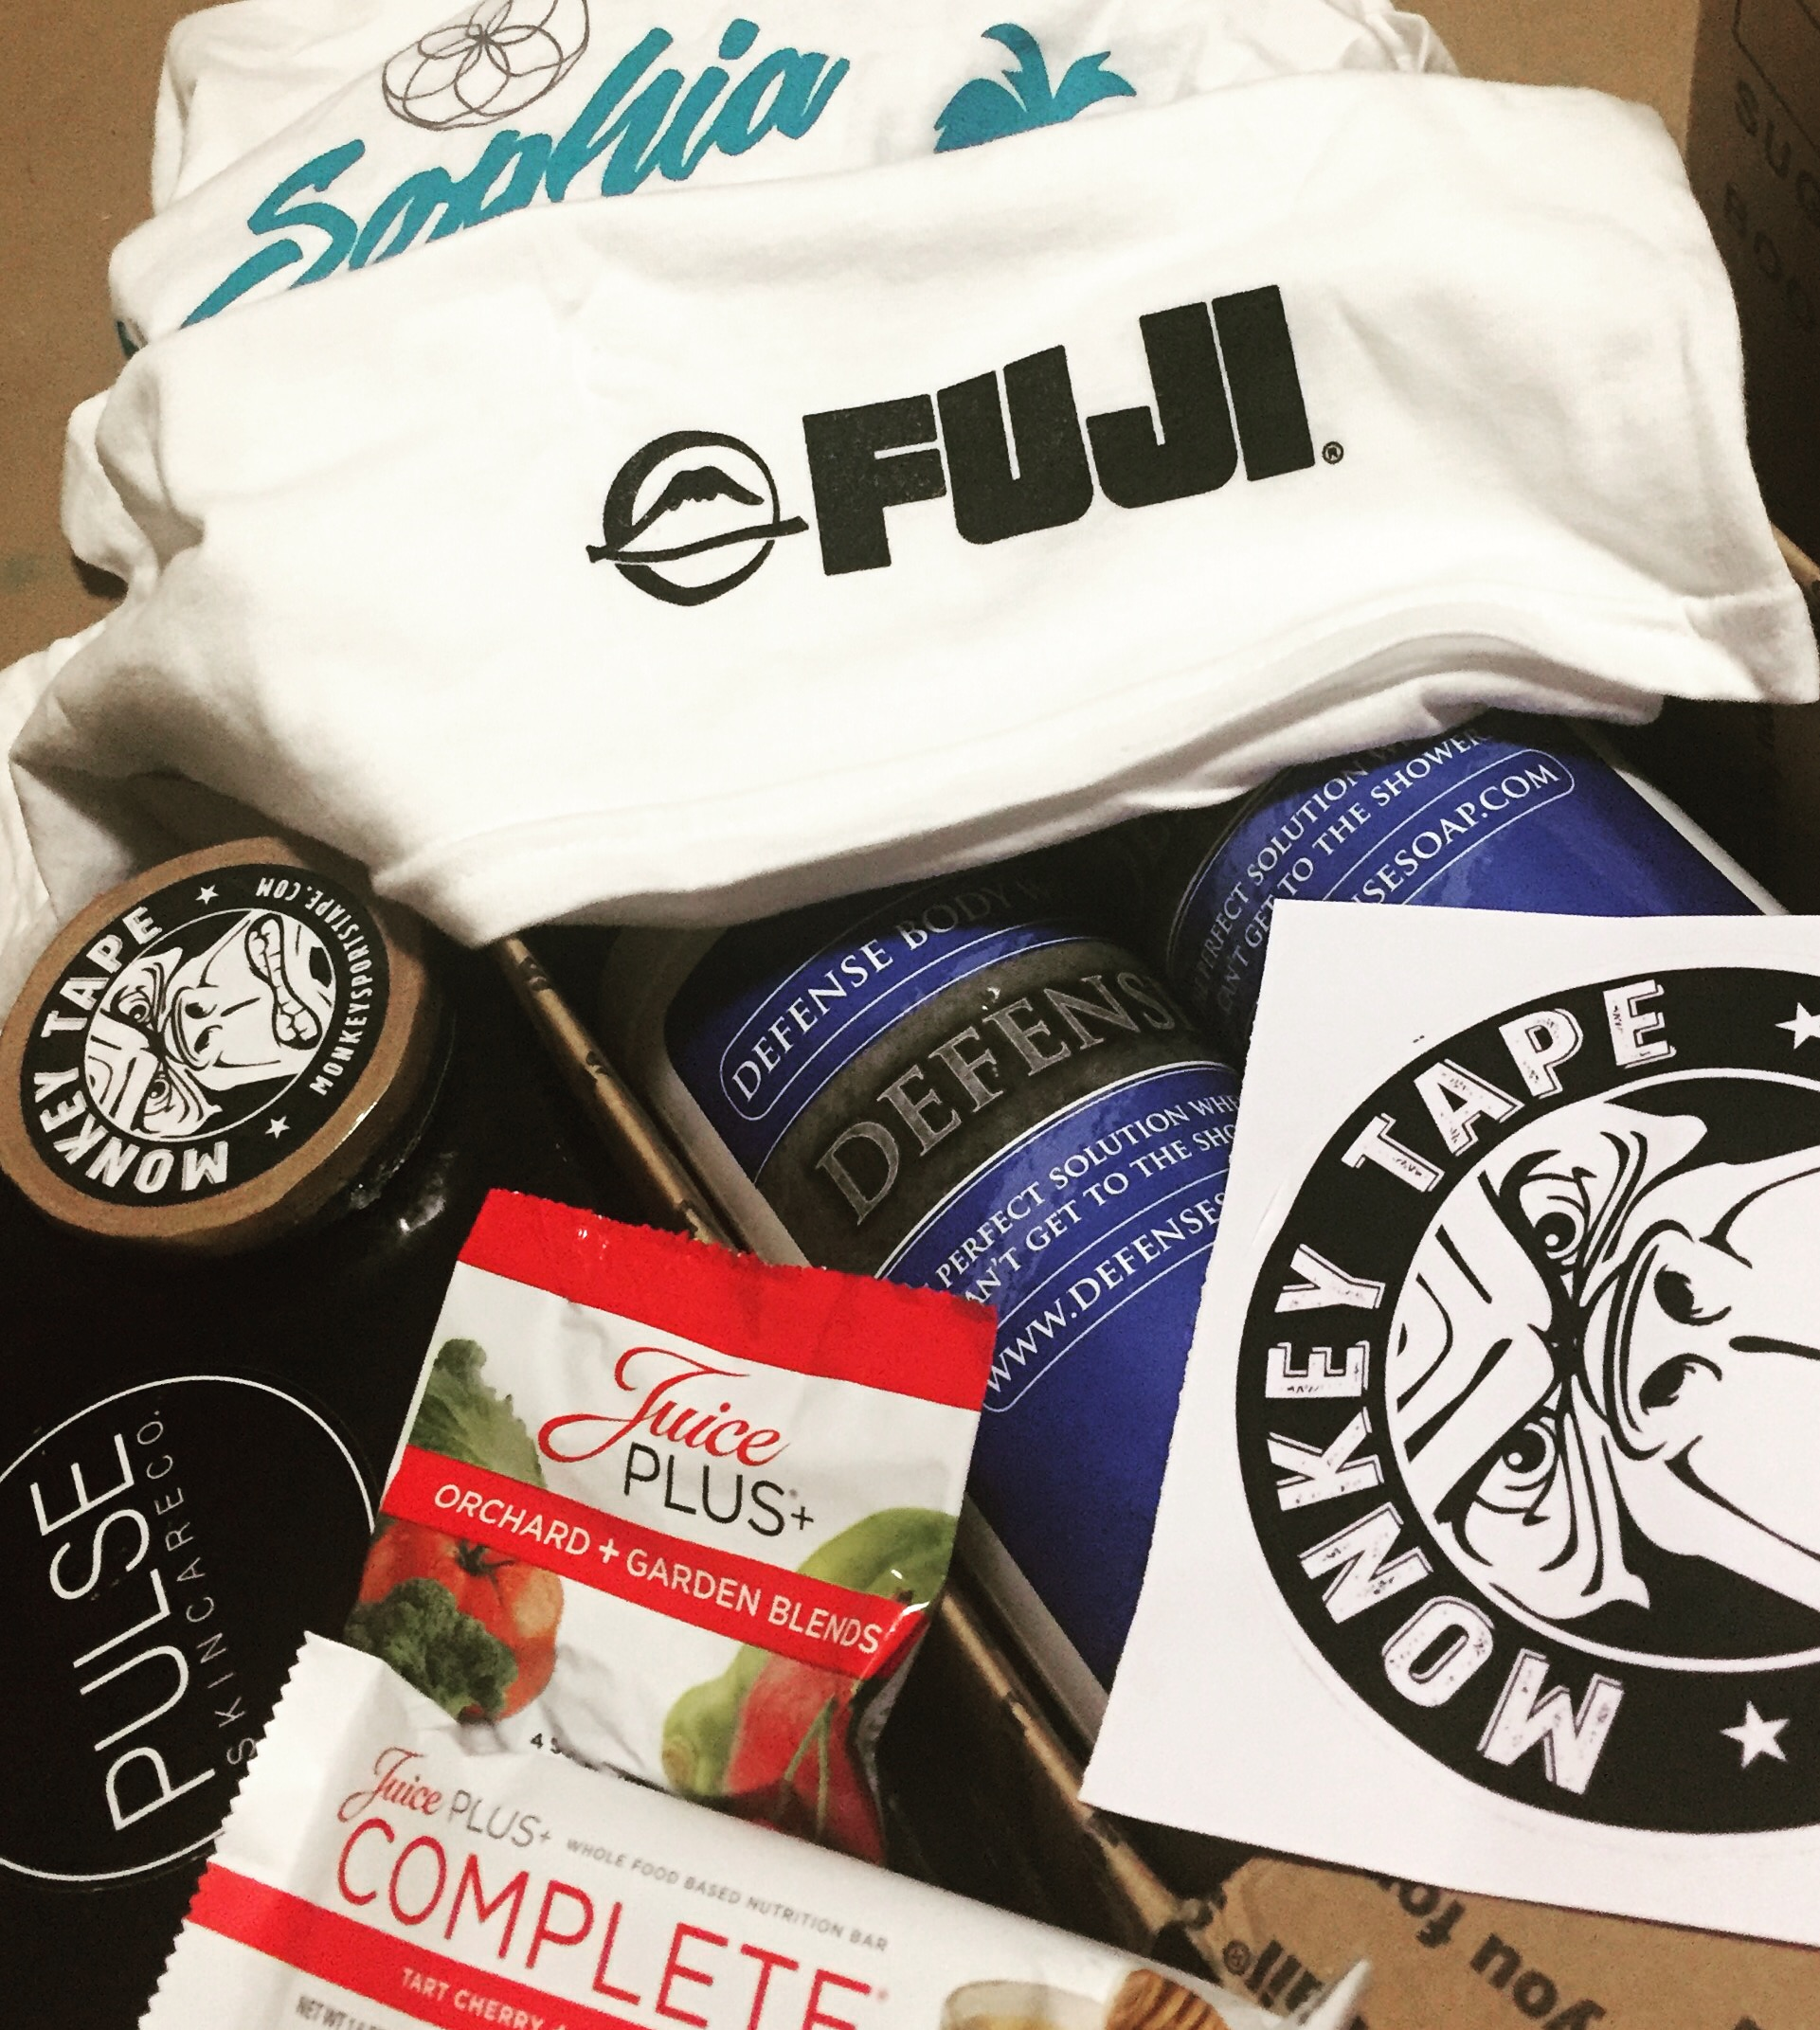 I would like to say a big thankyou to all the sponsors who provided awesome gifts to the goody bags. FujiSports, Monkey Tape, Defense Soap, Pulse Skin Care Co, Juice Plus+ & Fortitude Wellbeing Center.